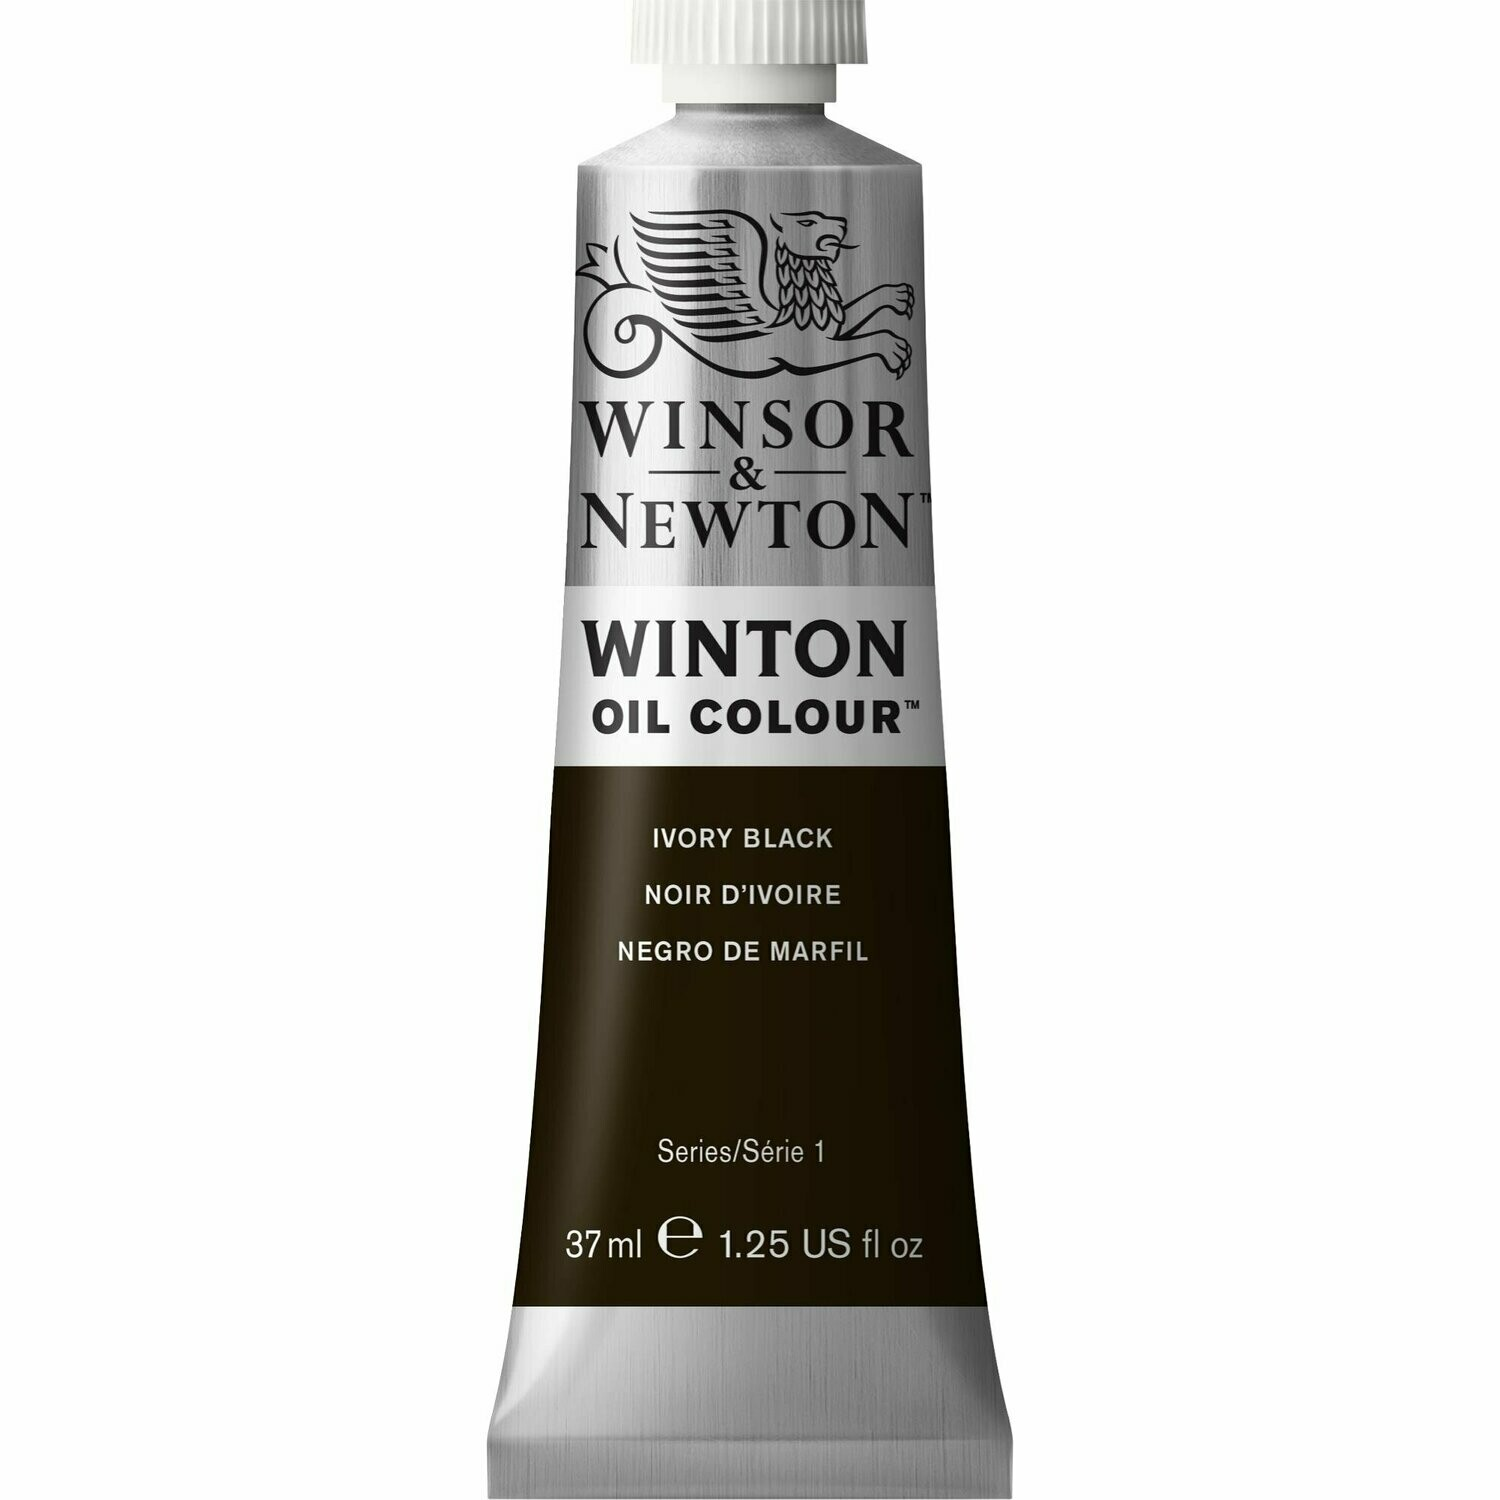 W&N-WINTON-ÖL-Ivory-Black-(37mL) - Winsor